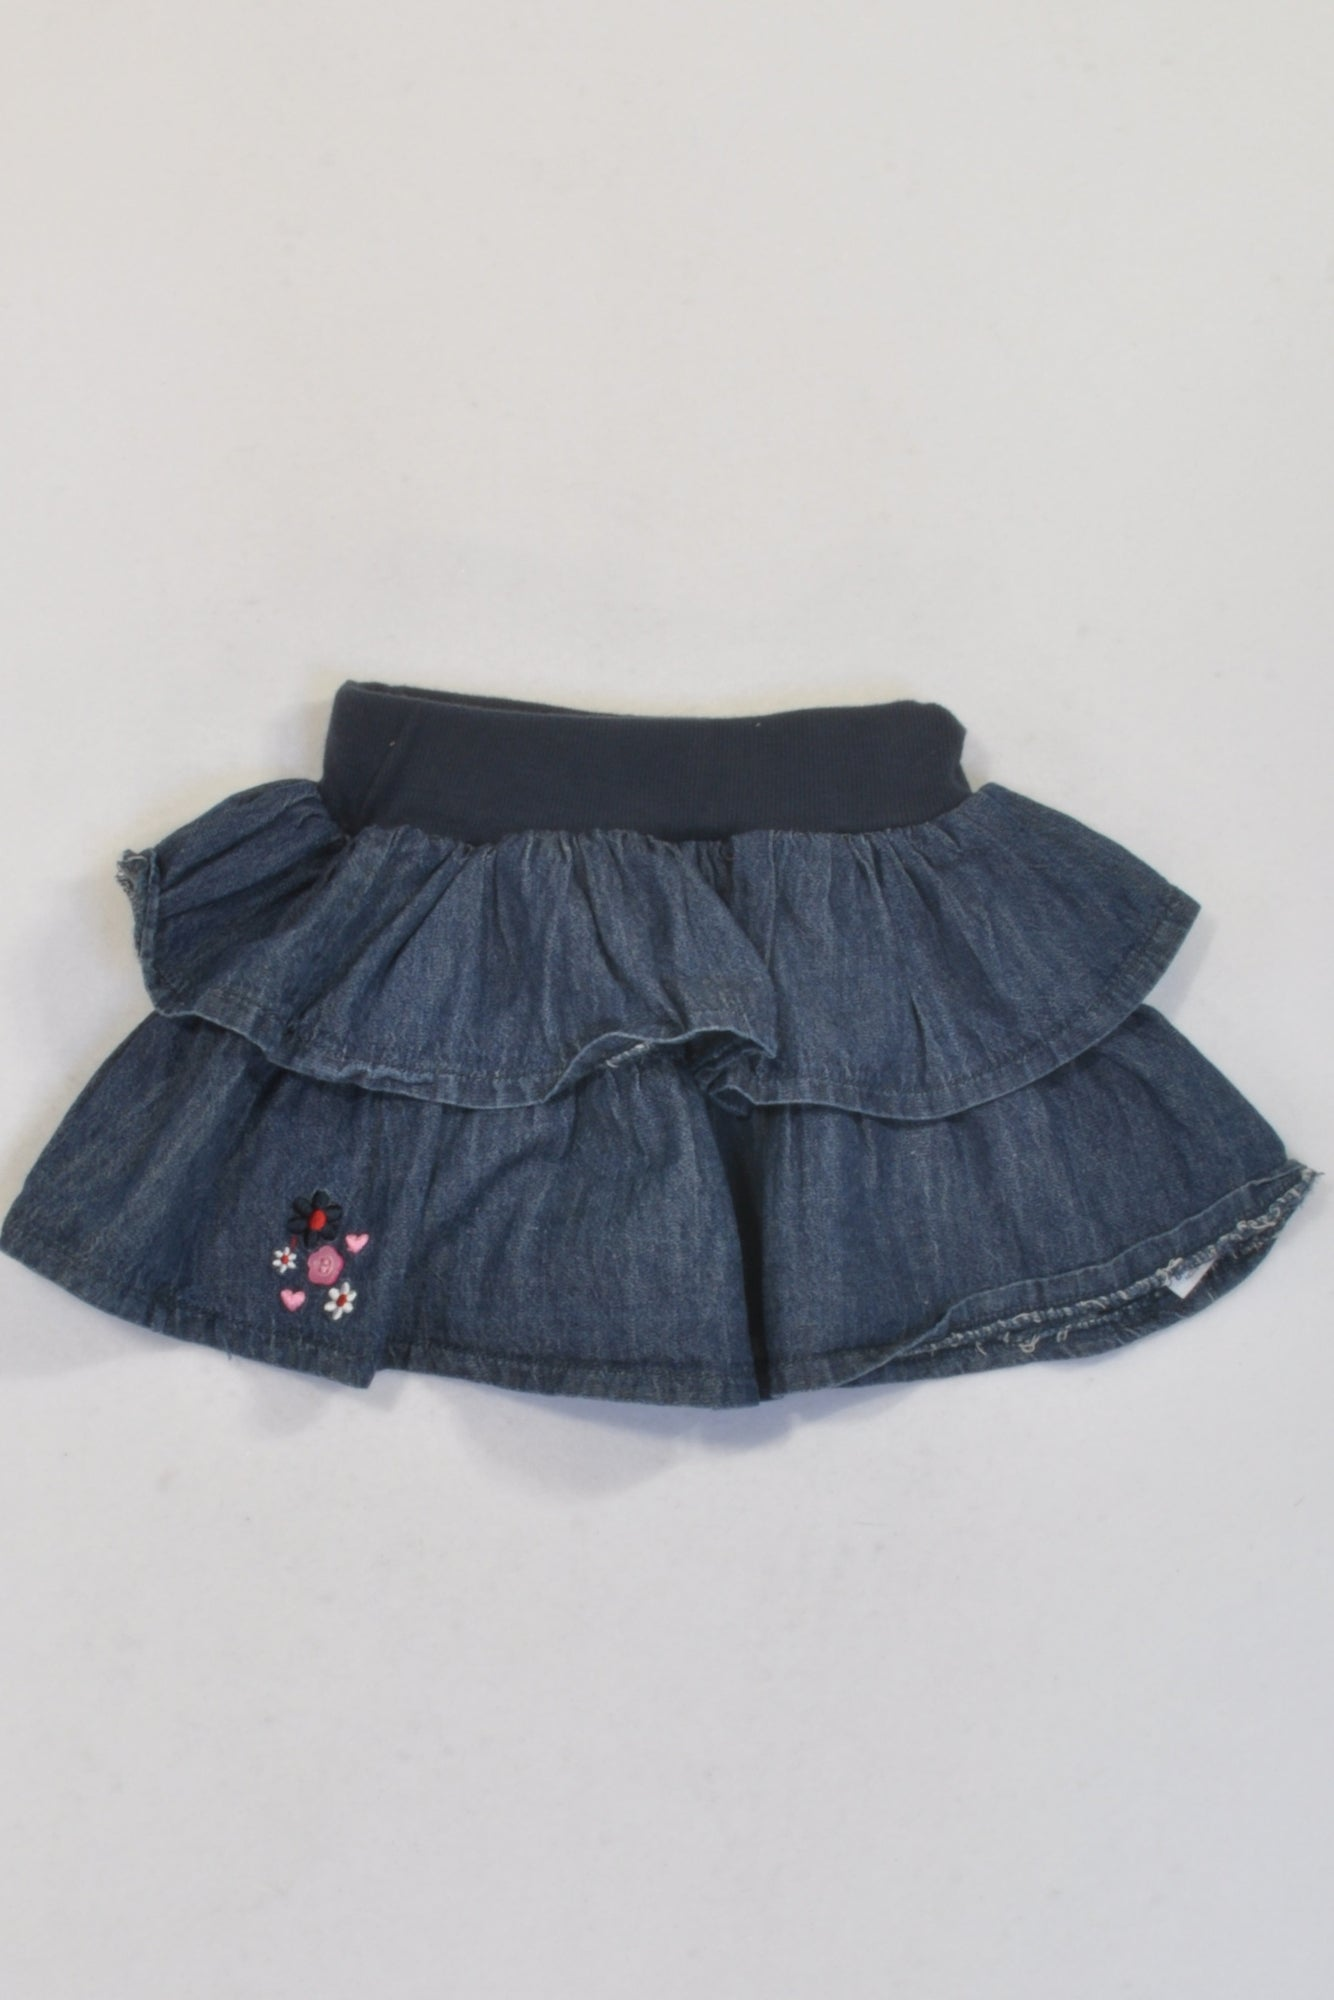 Denim Flower Detail Layered Ruffles Skirt Girls 3-6 months